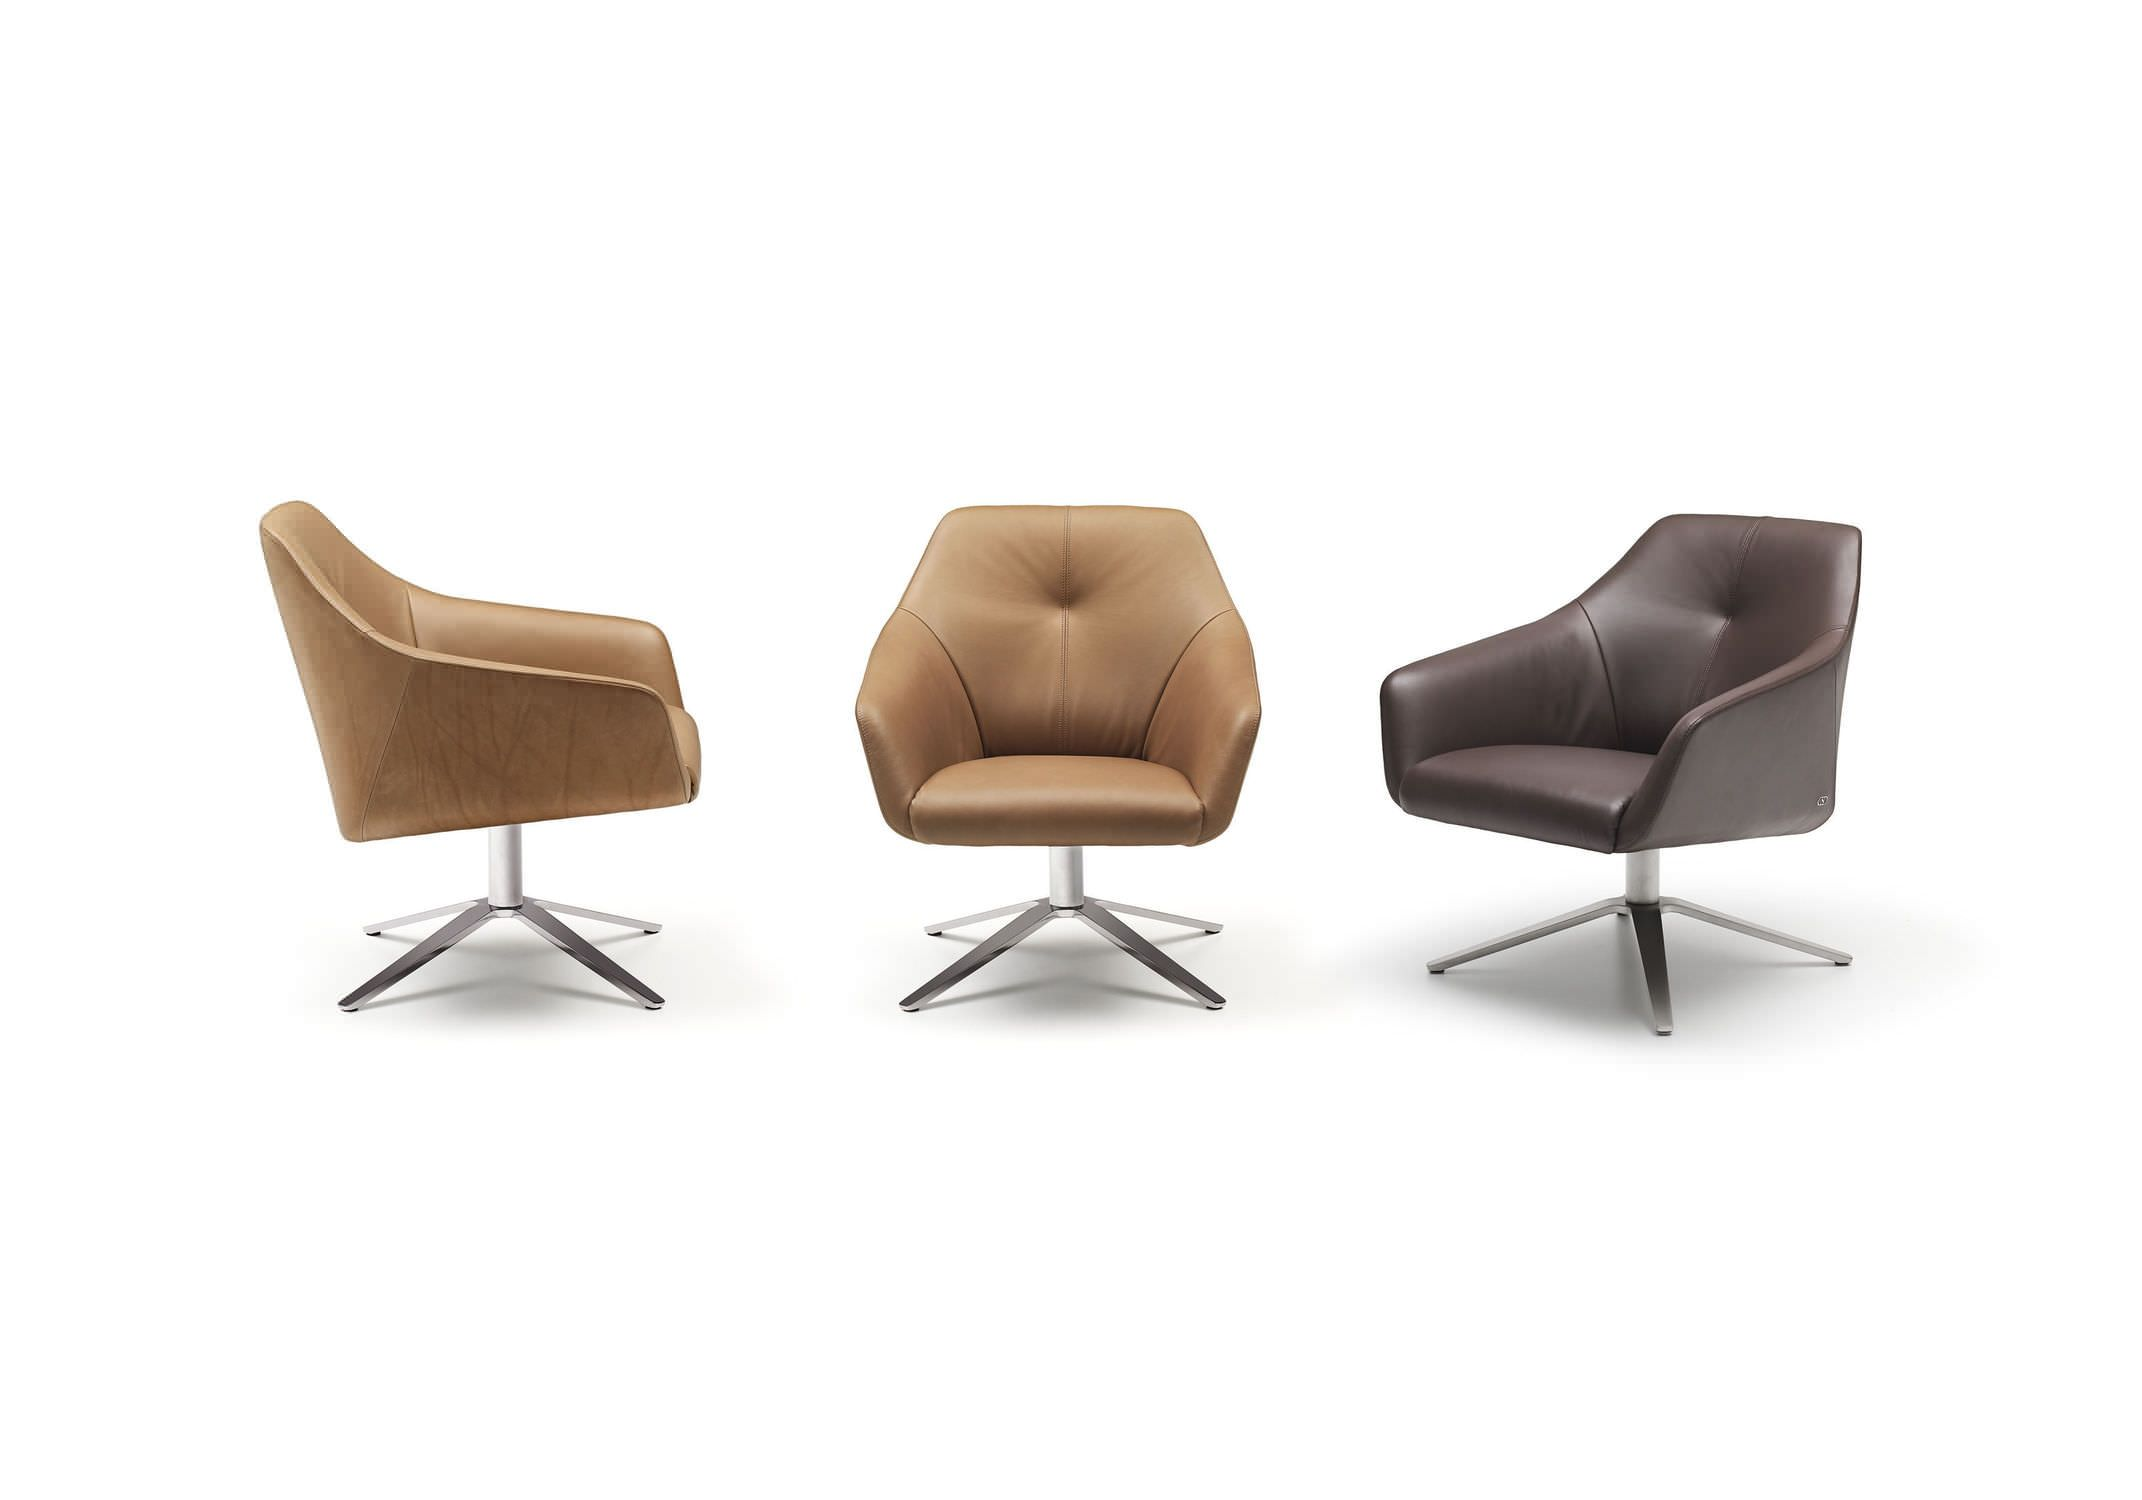 Captivating Contemporary Armchair / Leather / Swivel / Star Base DS 278 By Christian  Werner De Sede AG